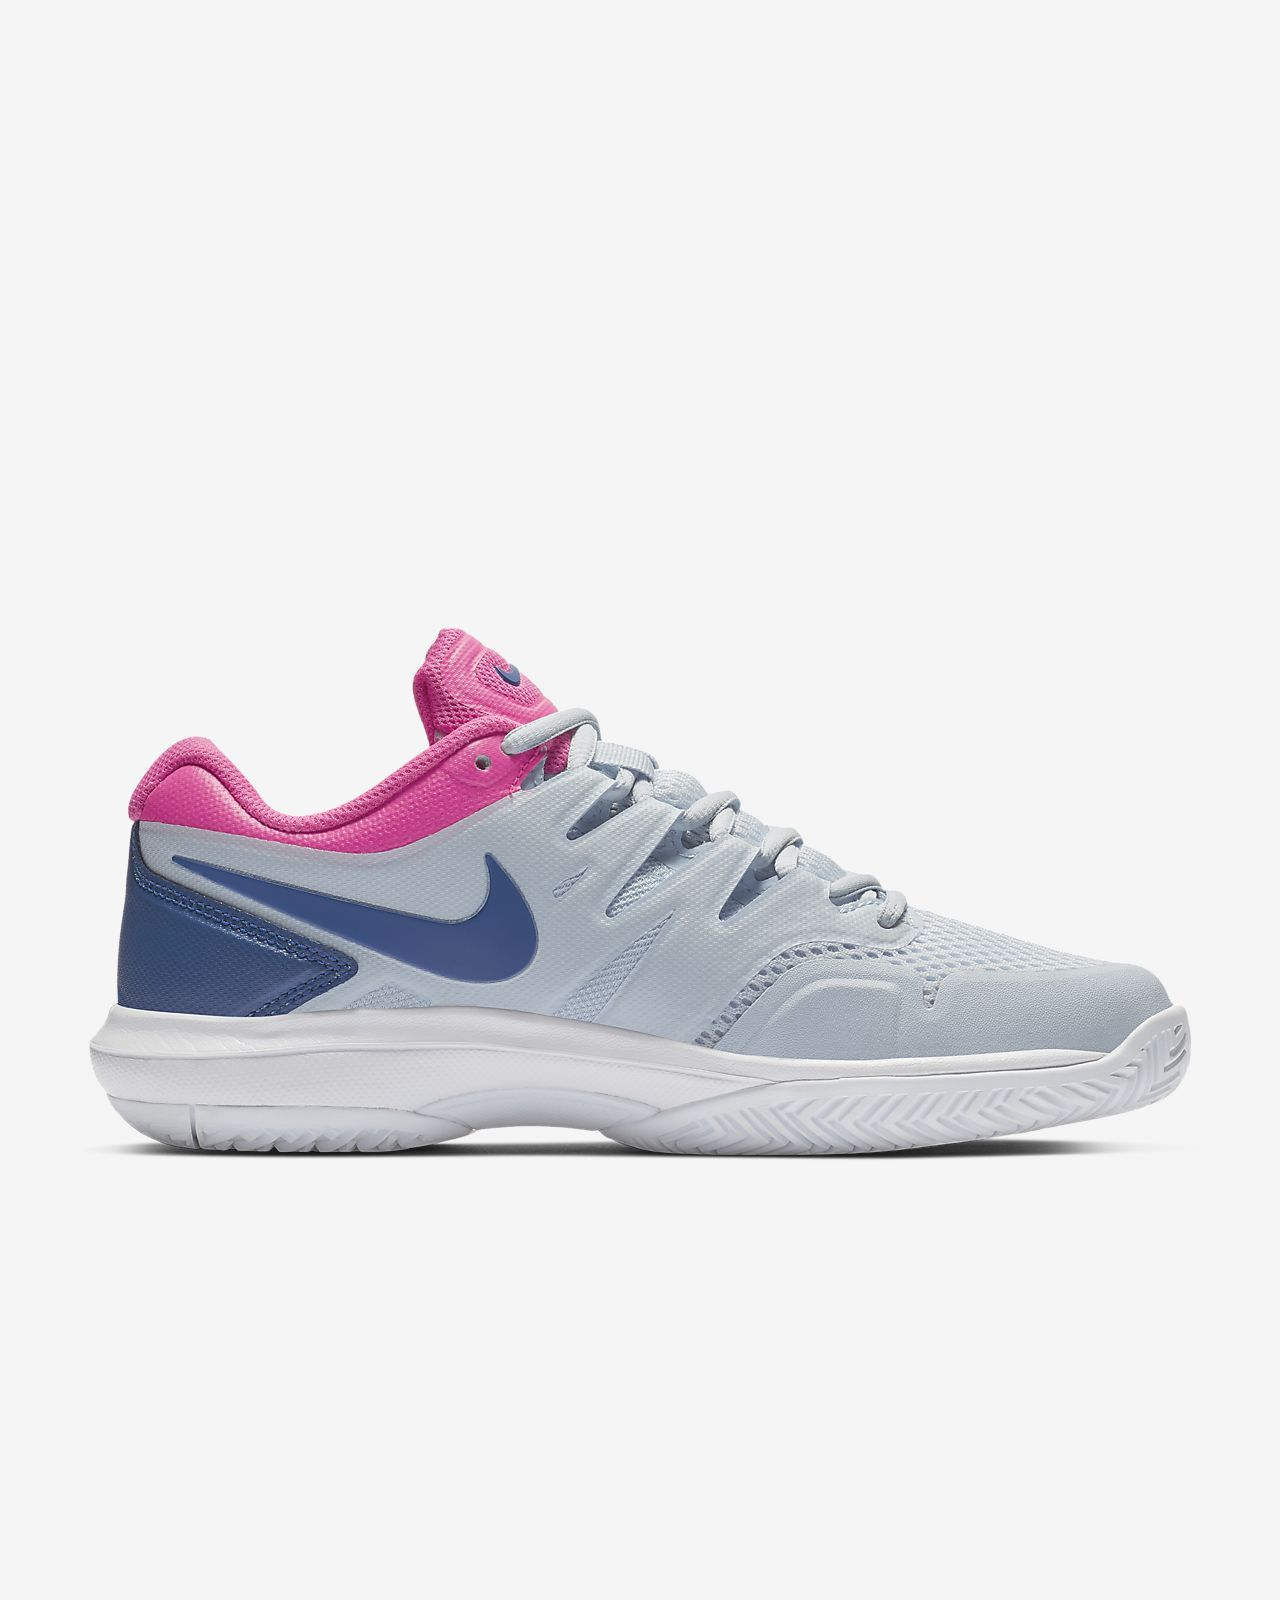 f8d82ee2b51a4 NikeCourt Air Zoom Prestige Women s Hard Court Tennis Shoe. Nike.com DK